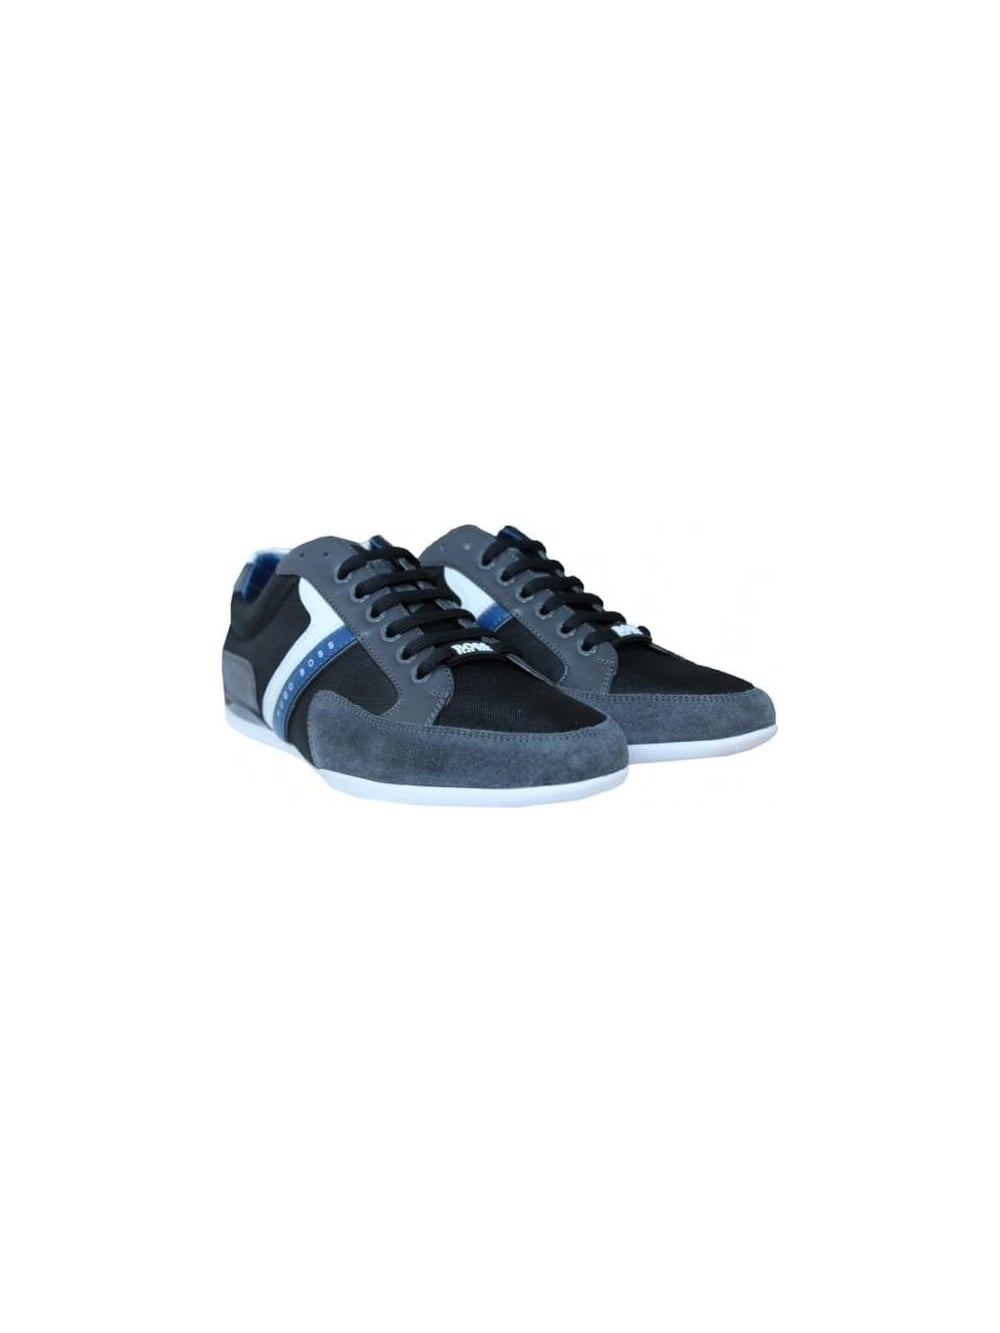 Boss Green Spacit Trainer in Charcoal